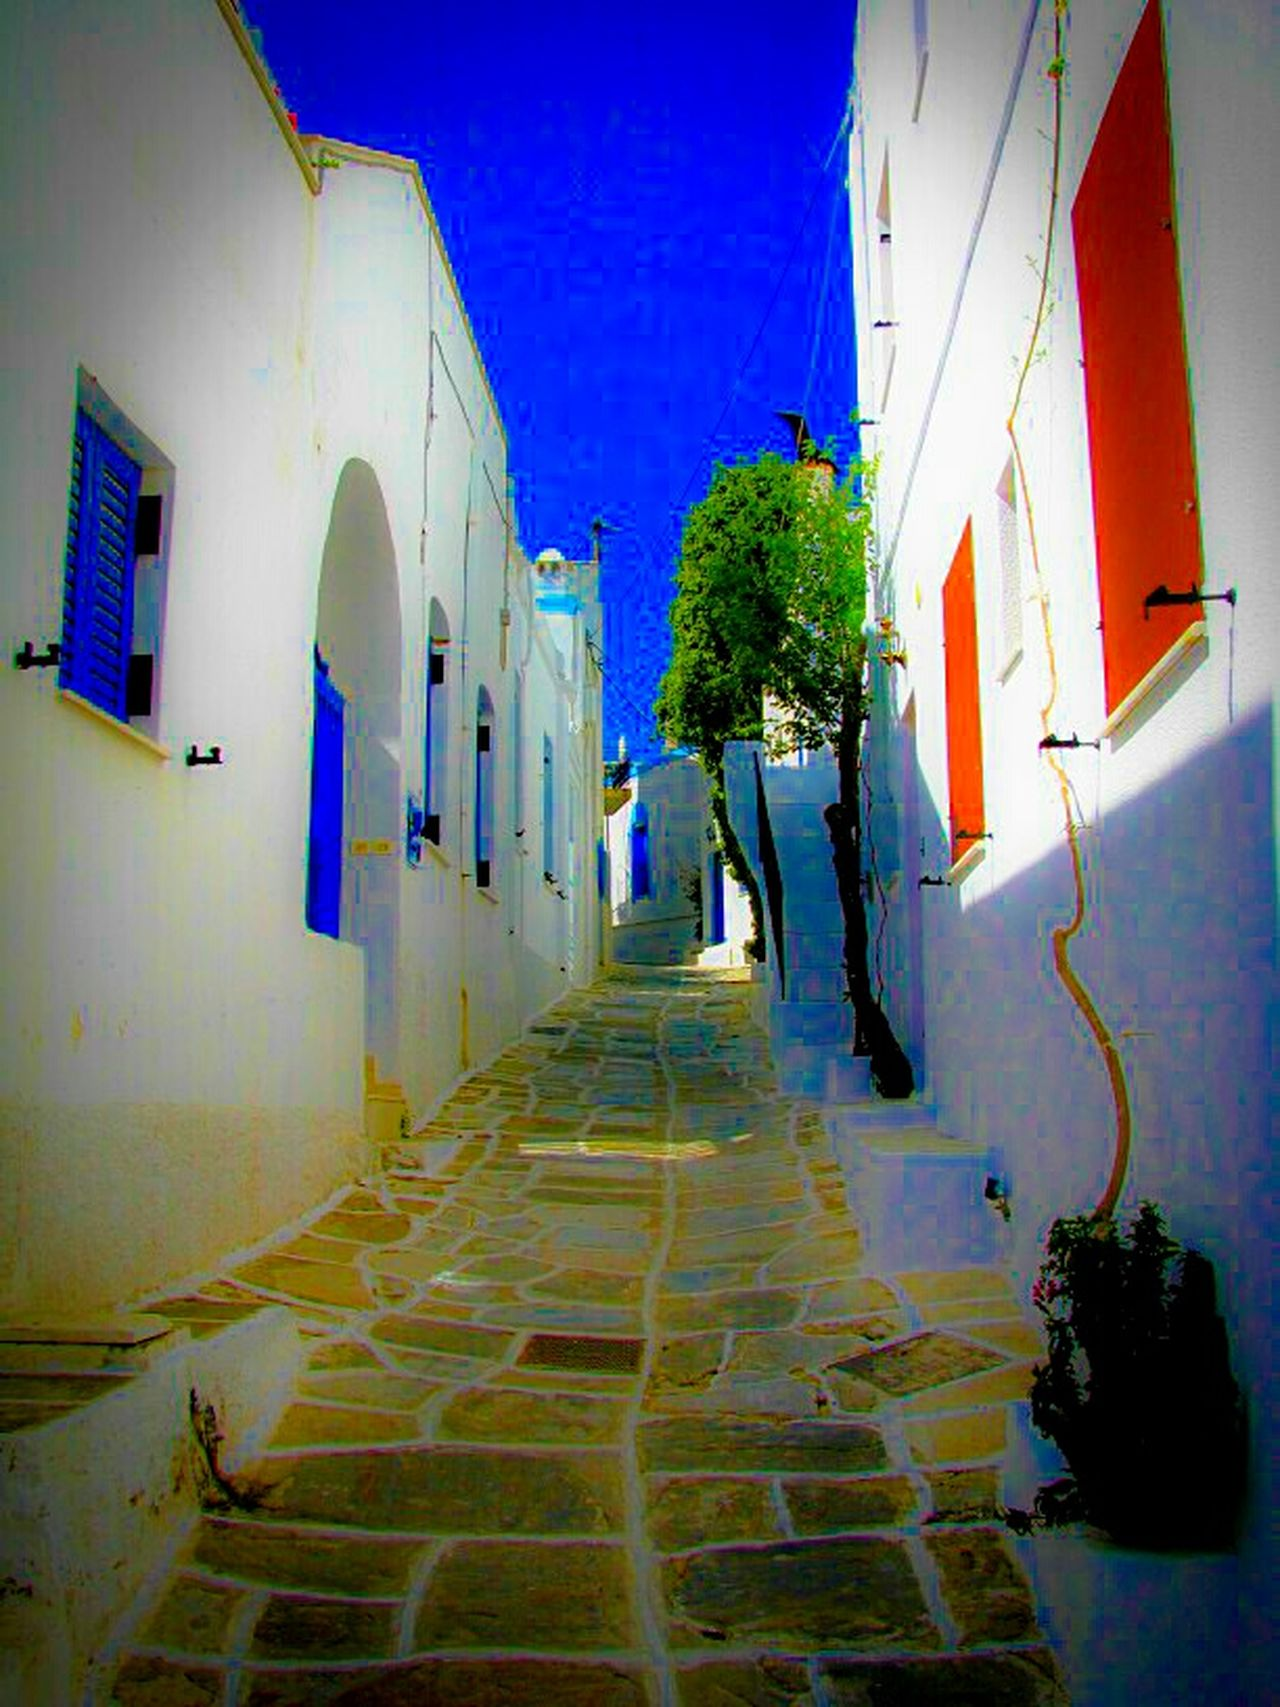 Q Quiet Places Alley Houses Windows Showcase March Lefkes Village Paros Island Coloured Windows Peace And Quiet Tranquility Tranquil Scene A Moment Of Zen... Greek Islands No People Summer Memories 🌄 Greece Summer Views Pastel Power Street Photography Blue Wave